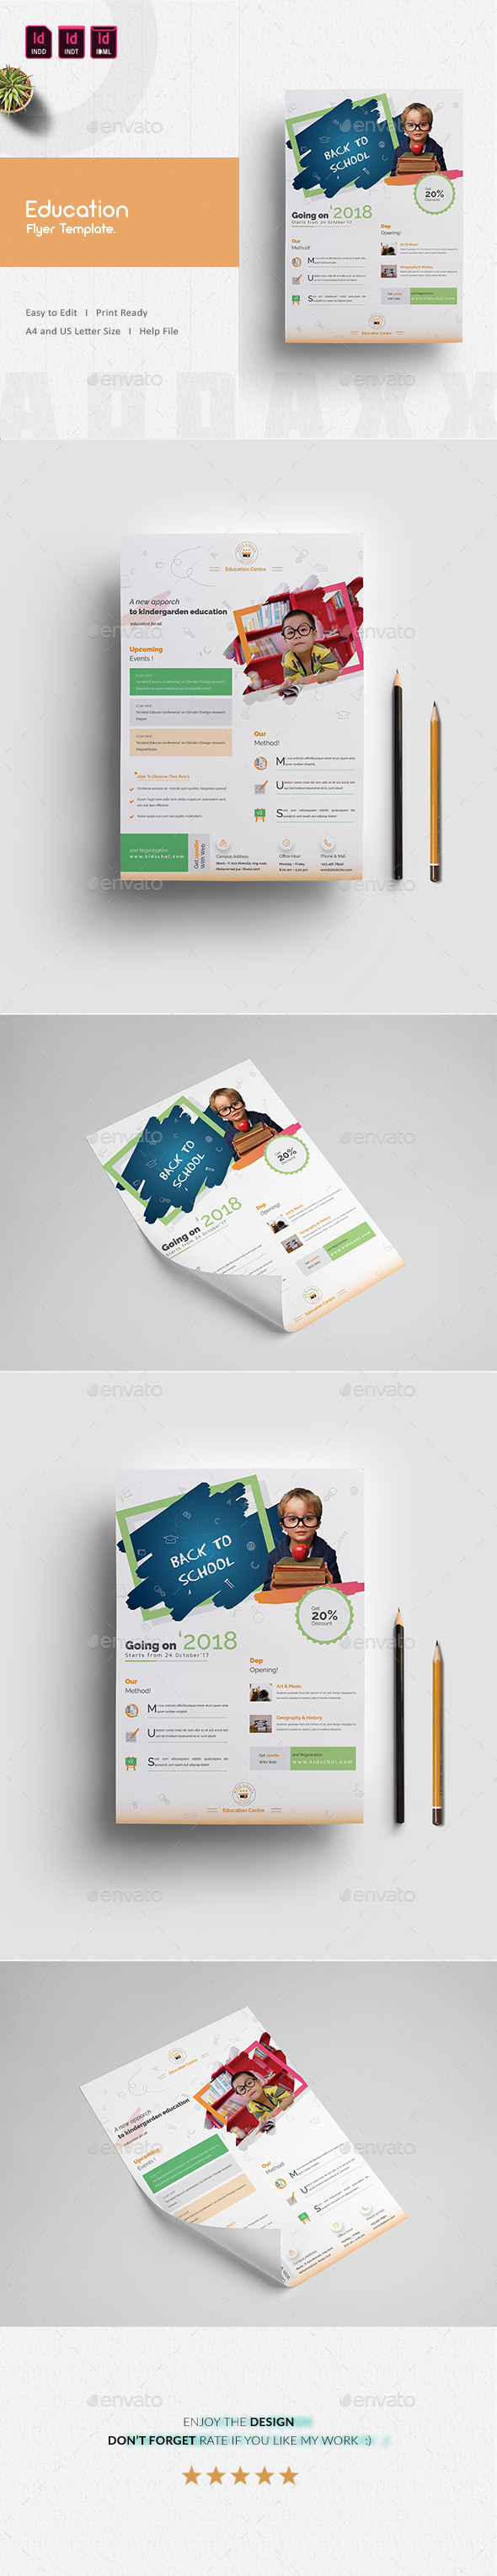 GraphicRiver Education Flyer 20960523